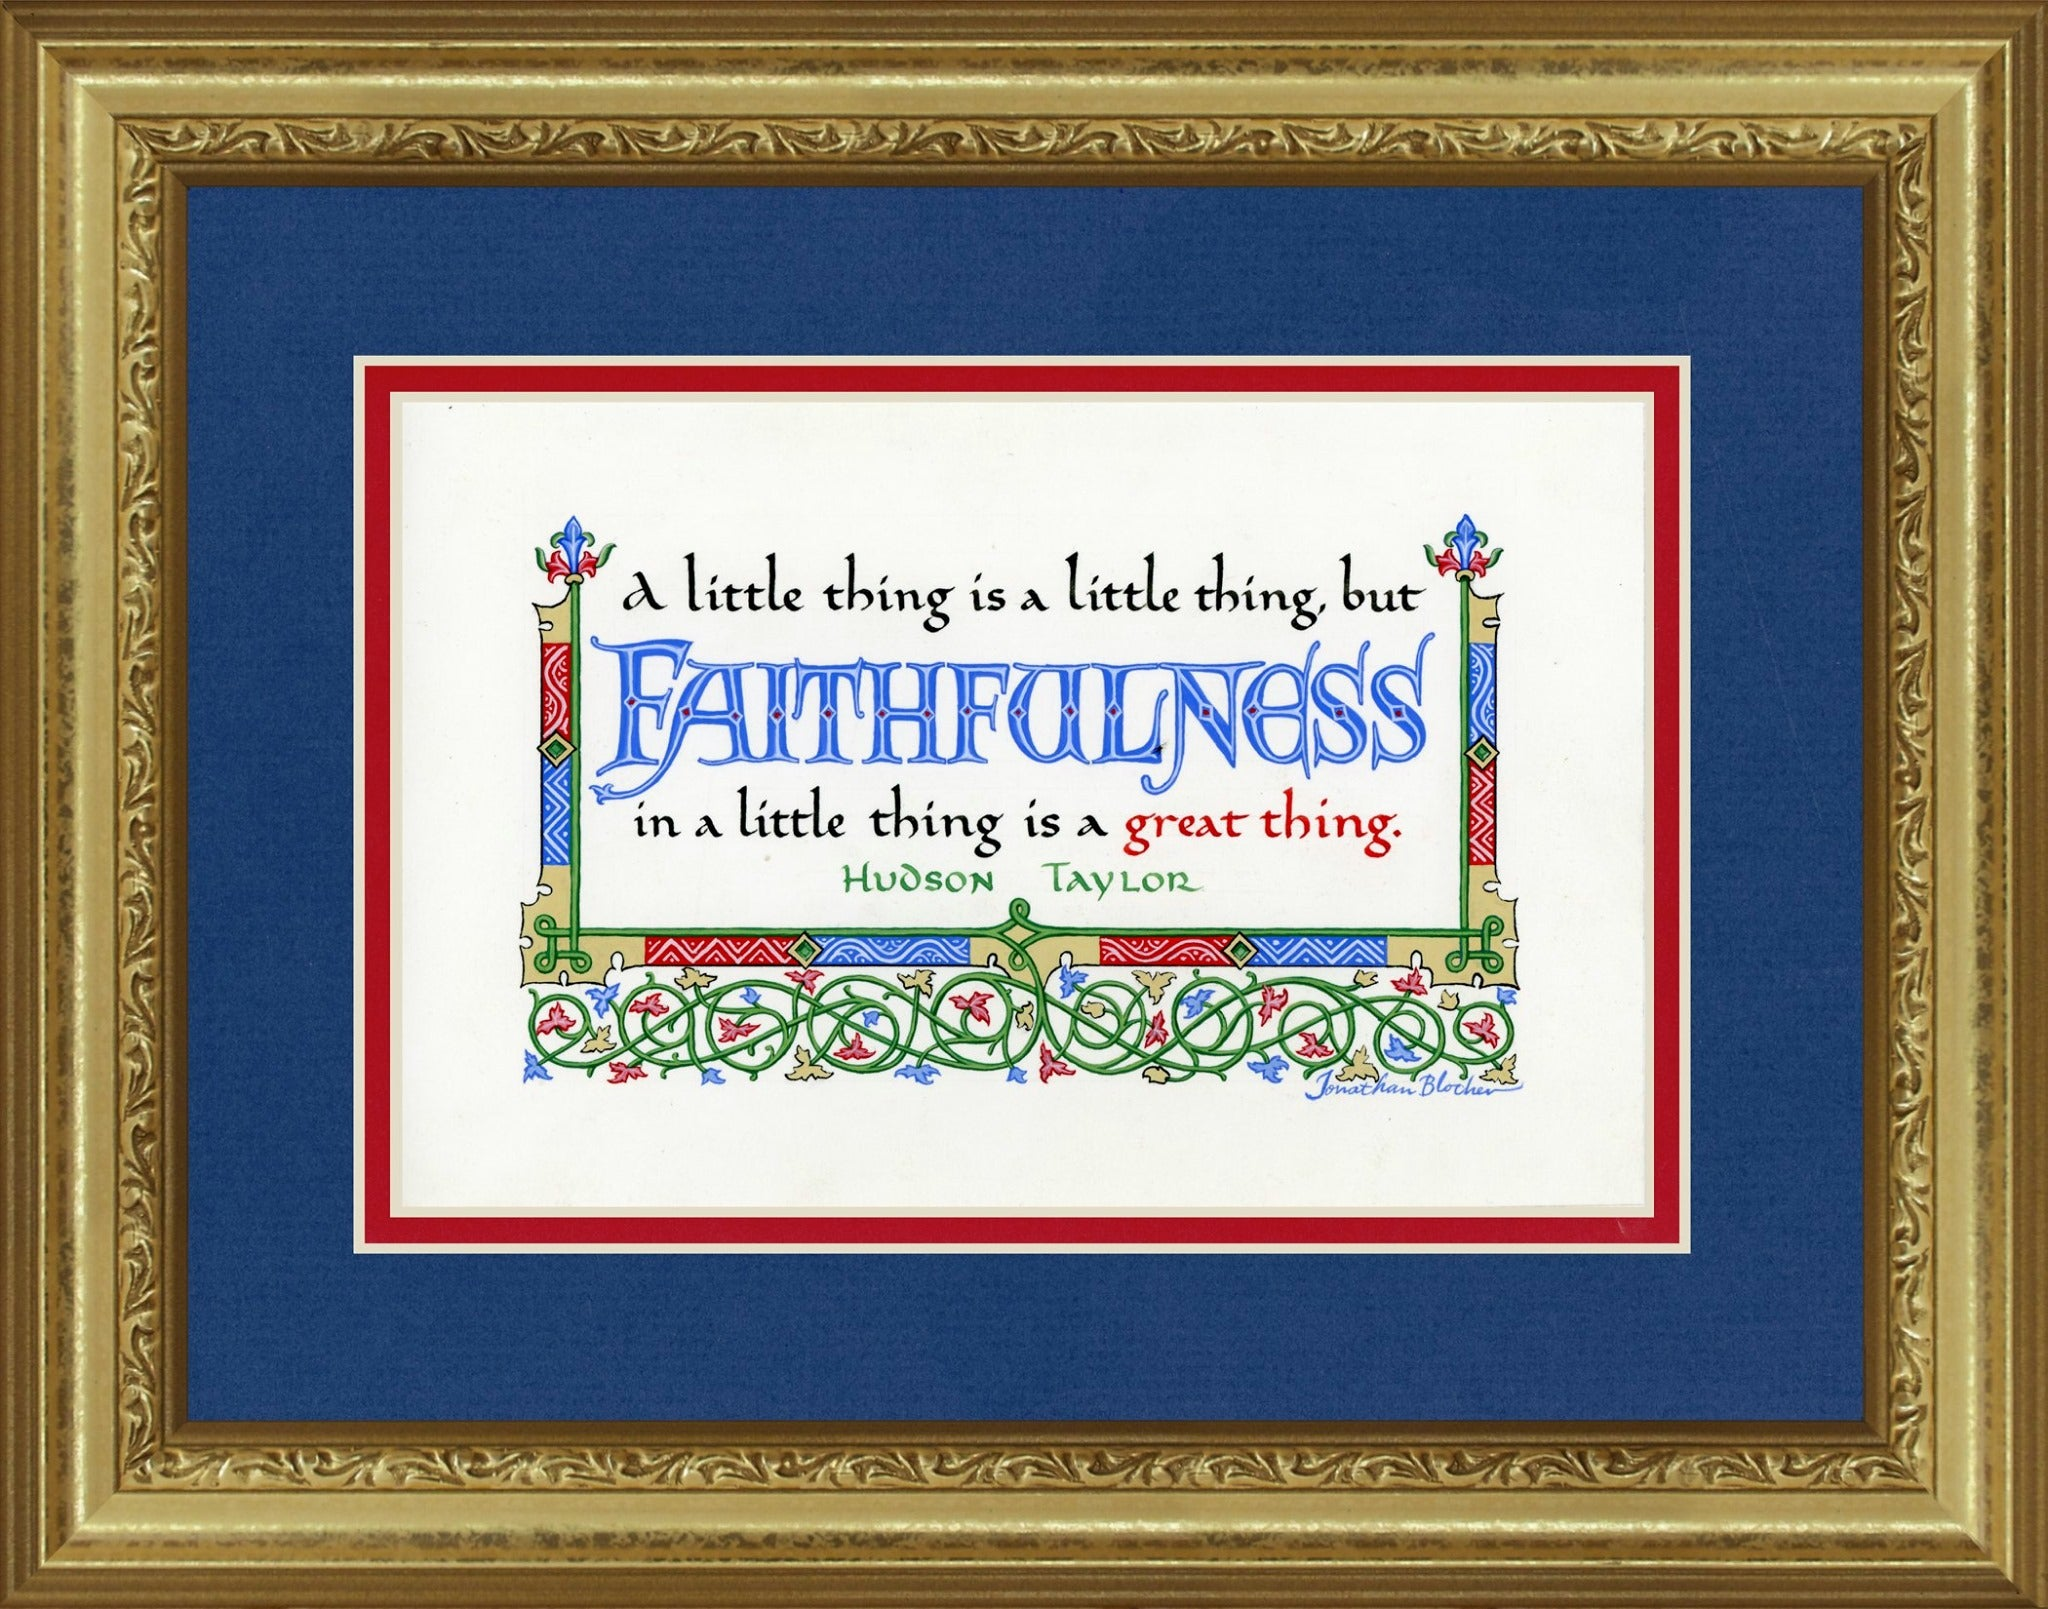 Hudson Taylor Faithfulness